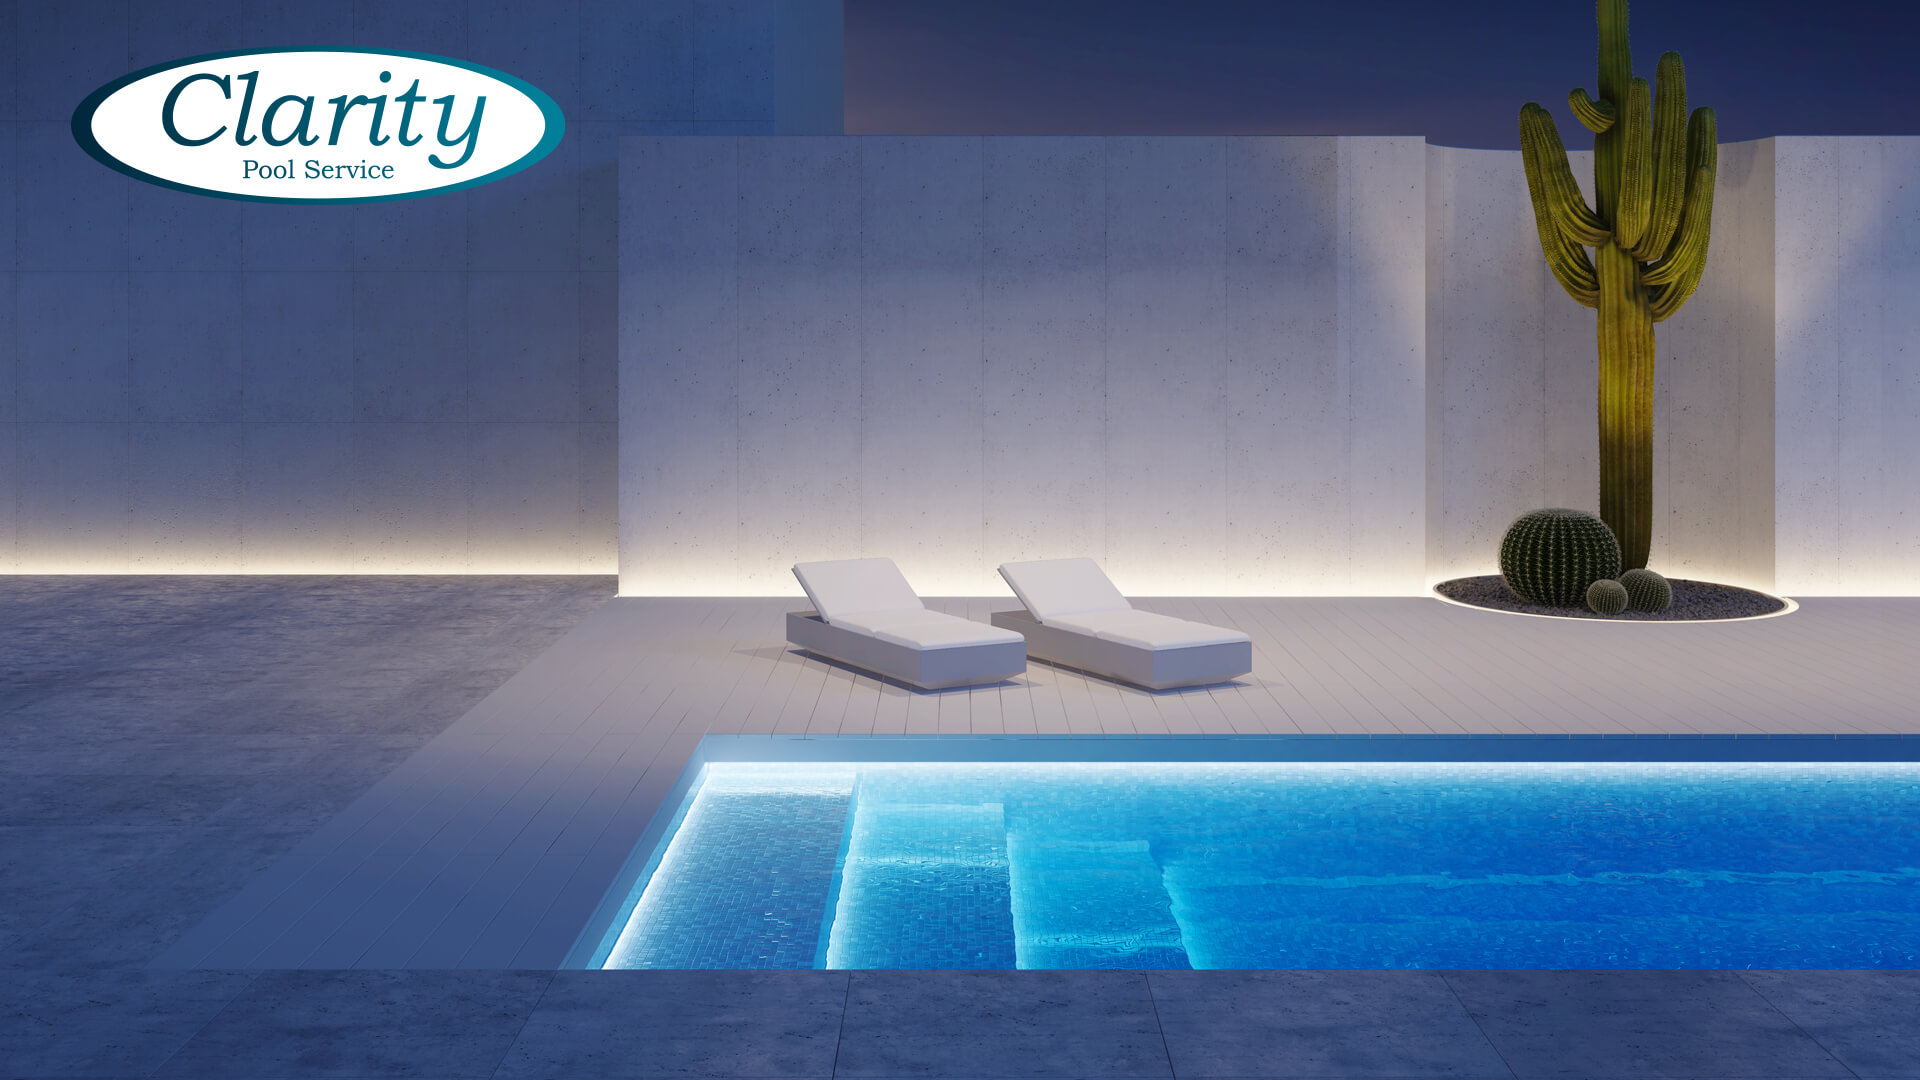 Custom Swimming Pool Lighting - Clarity Pool Service of Las vegas, Nevada